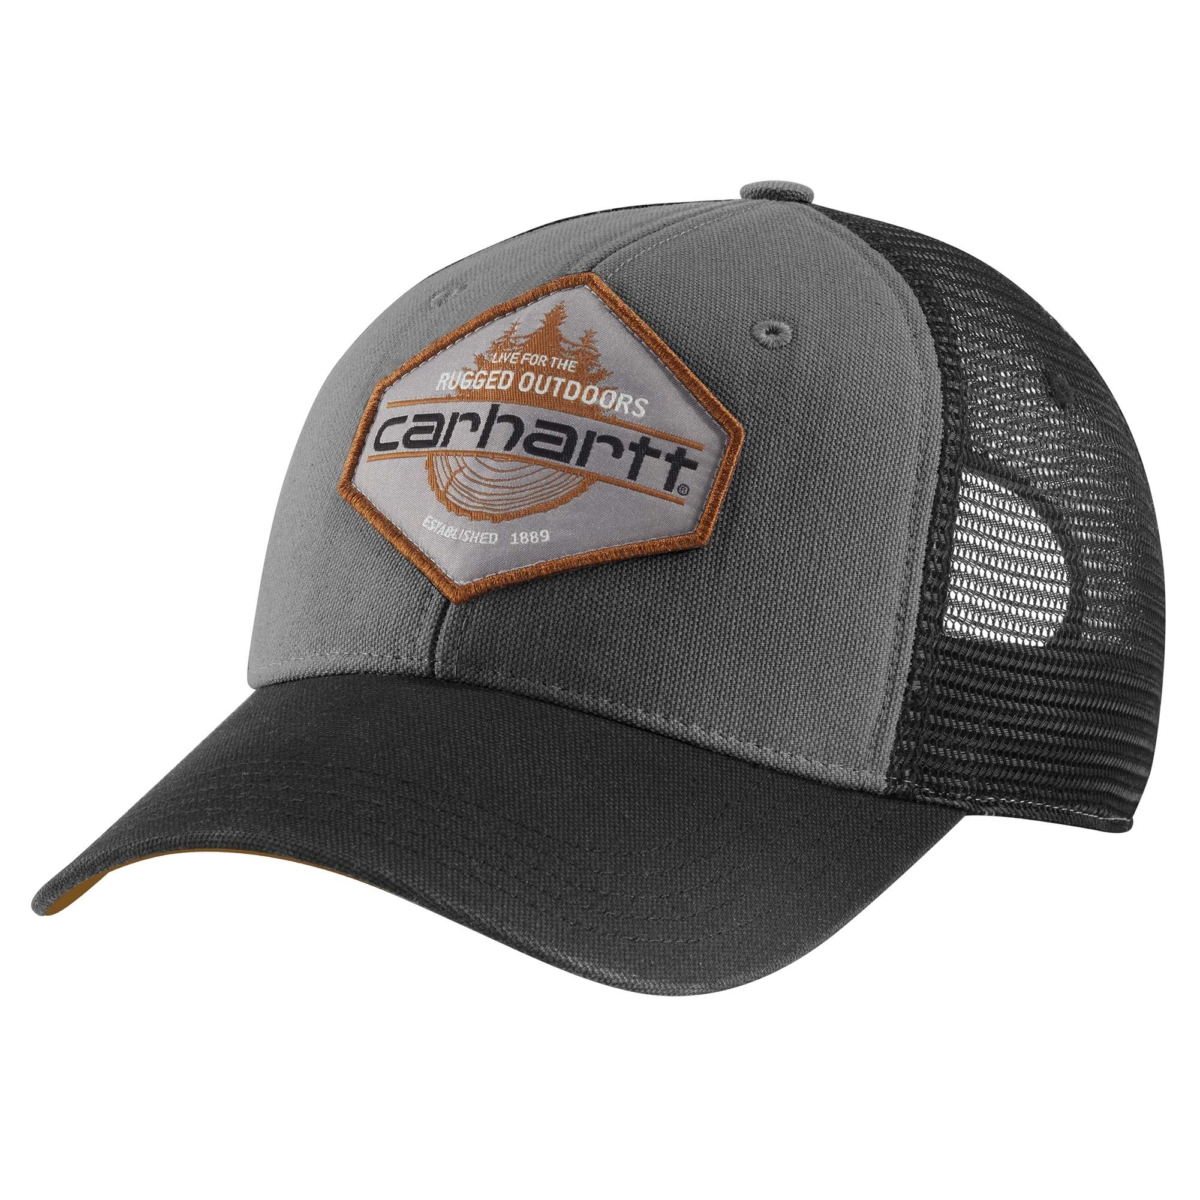 Carhartt Bear Lake Cap Gravel USA - GOOFASH - Mens CAPS